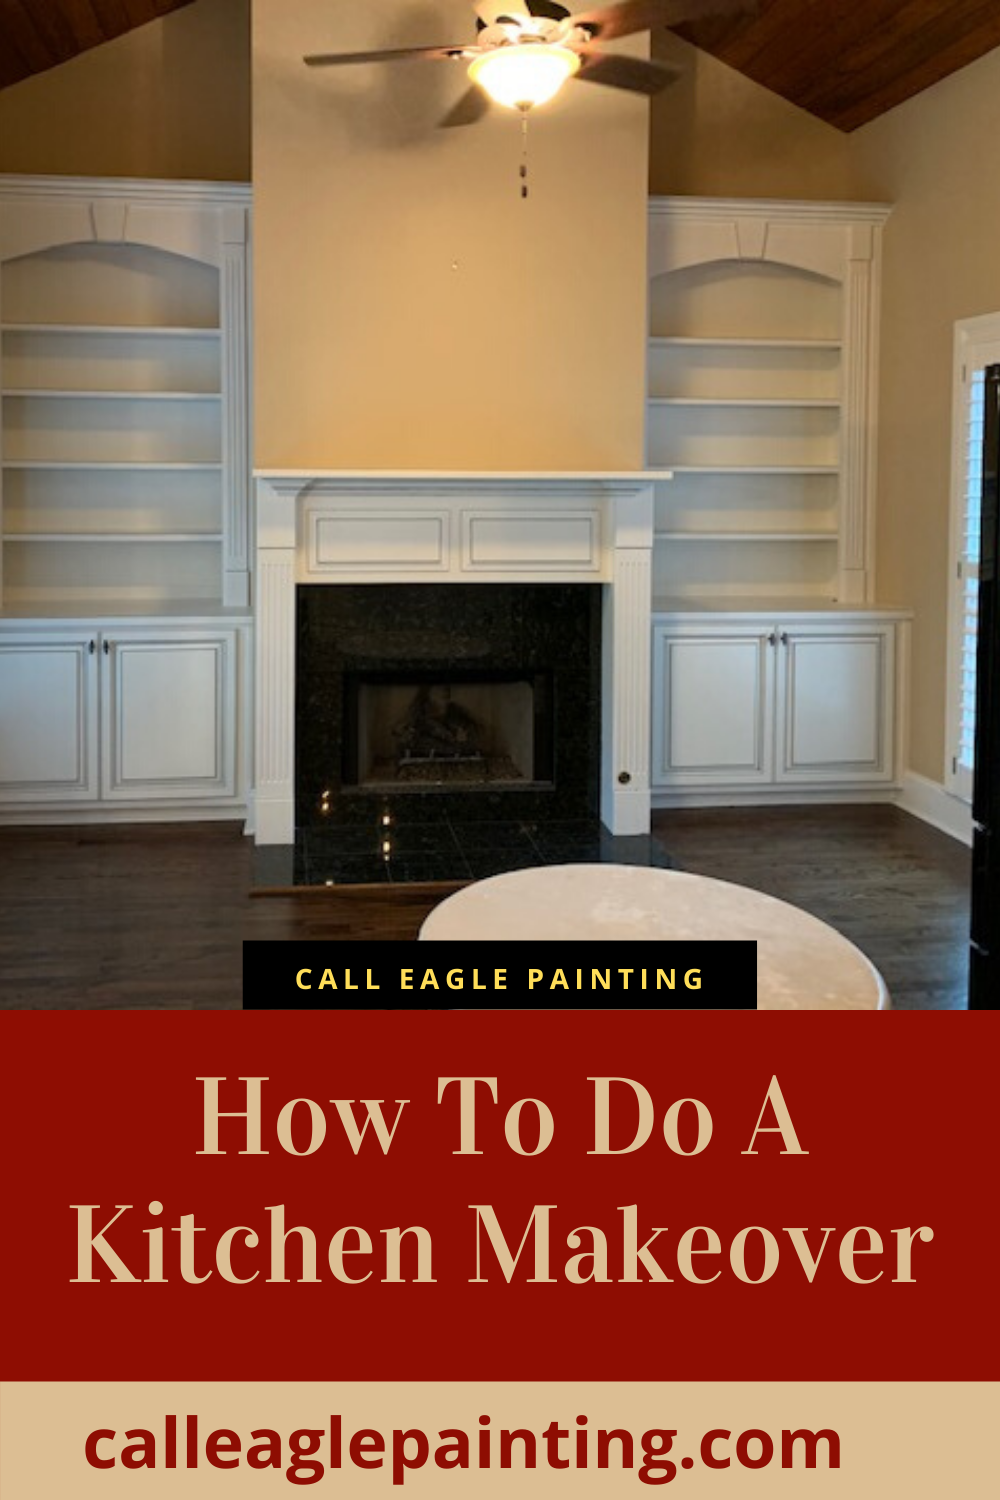 How To Get A Free Kitchen Makeover In 2020